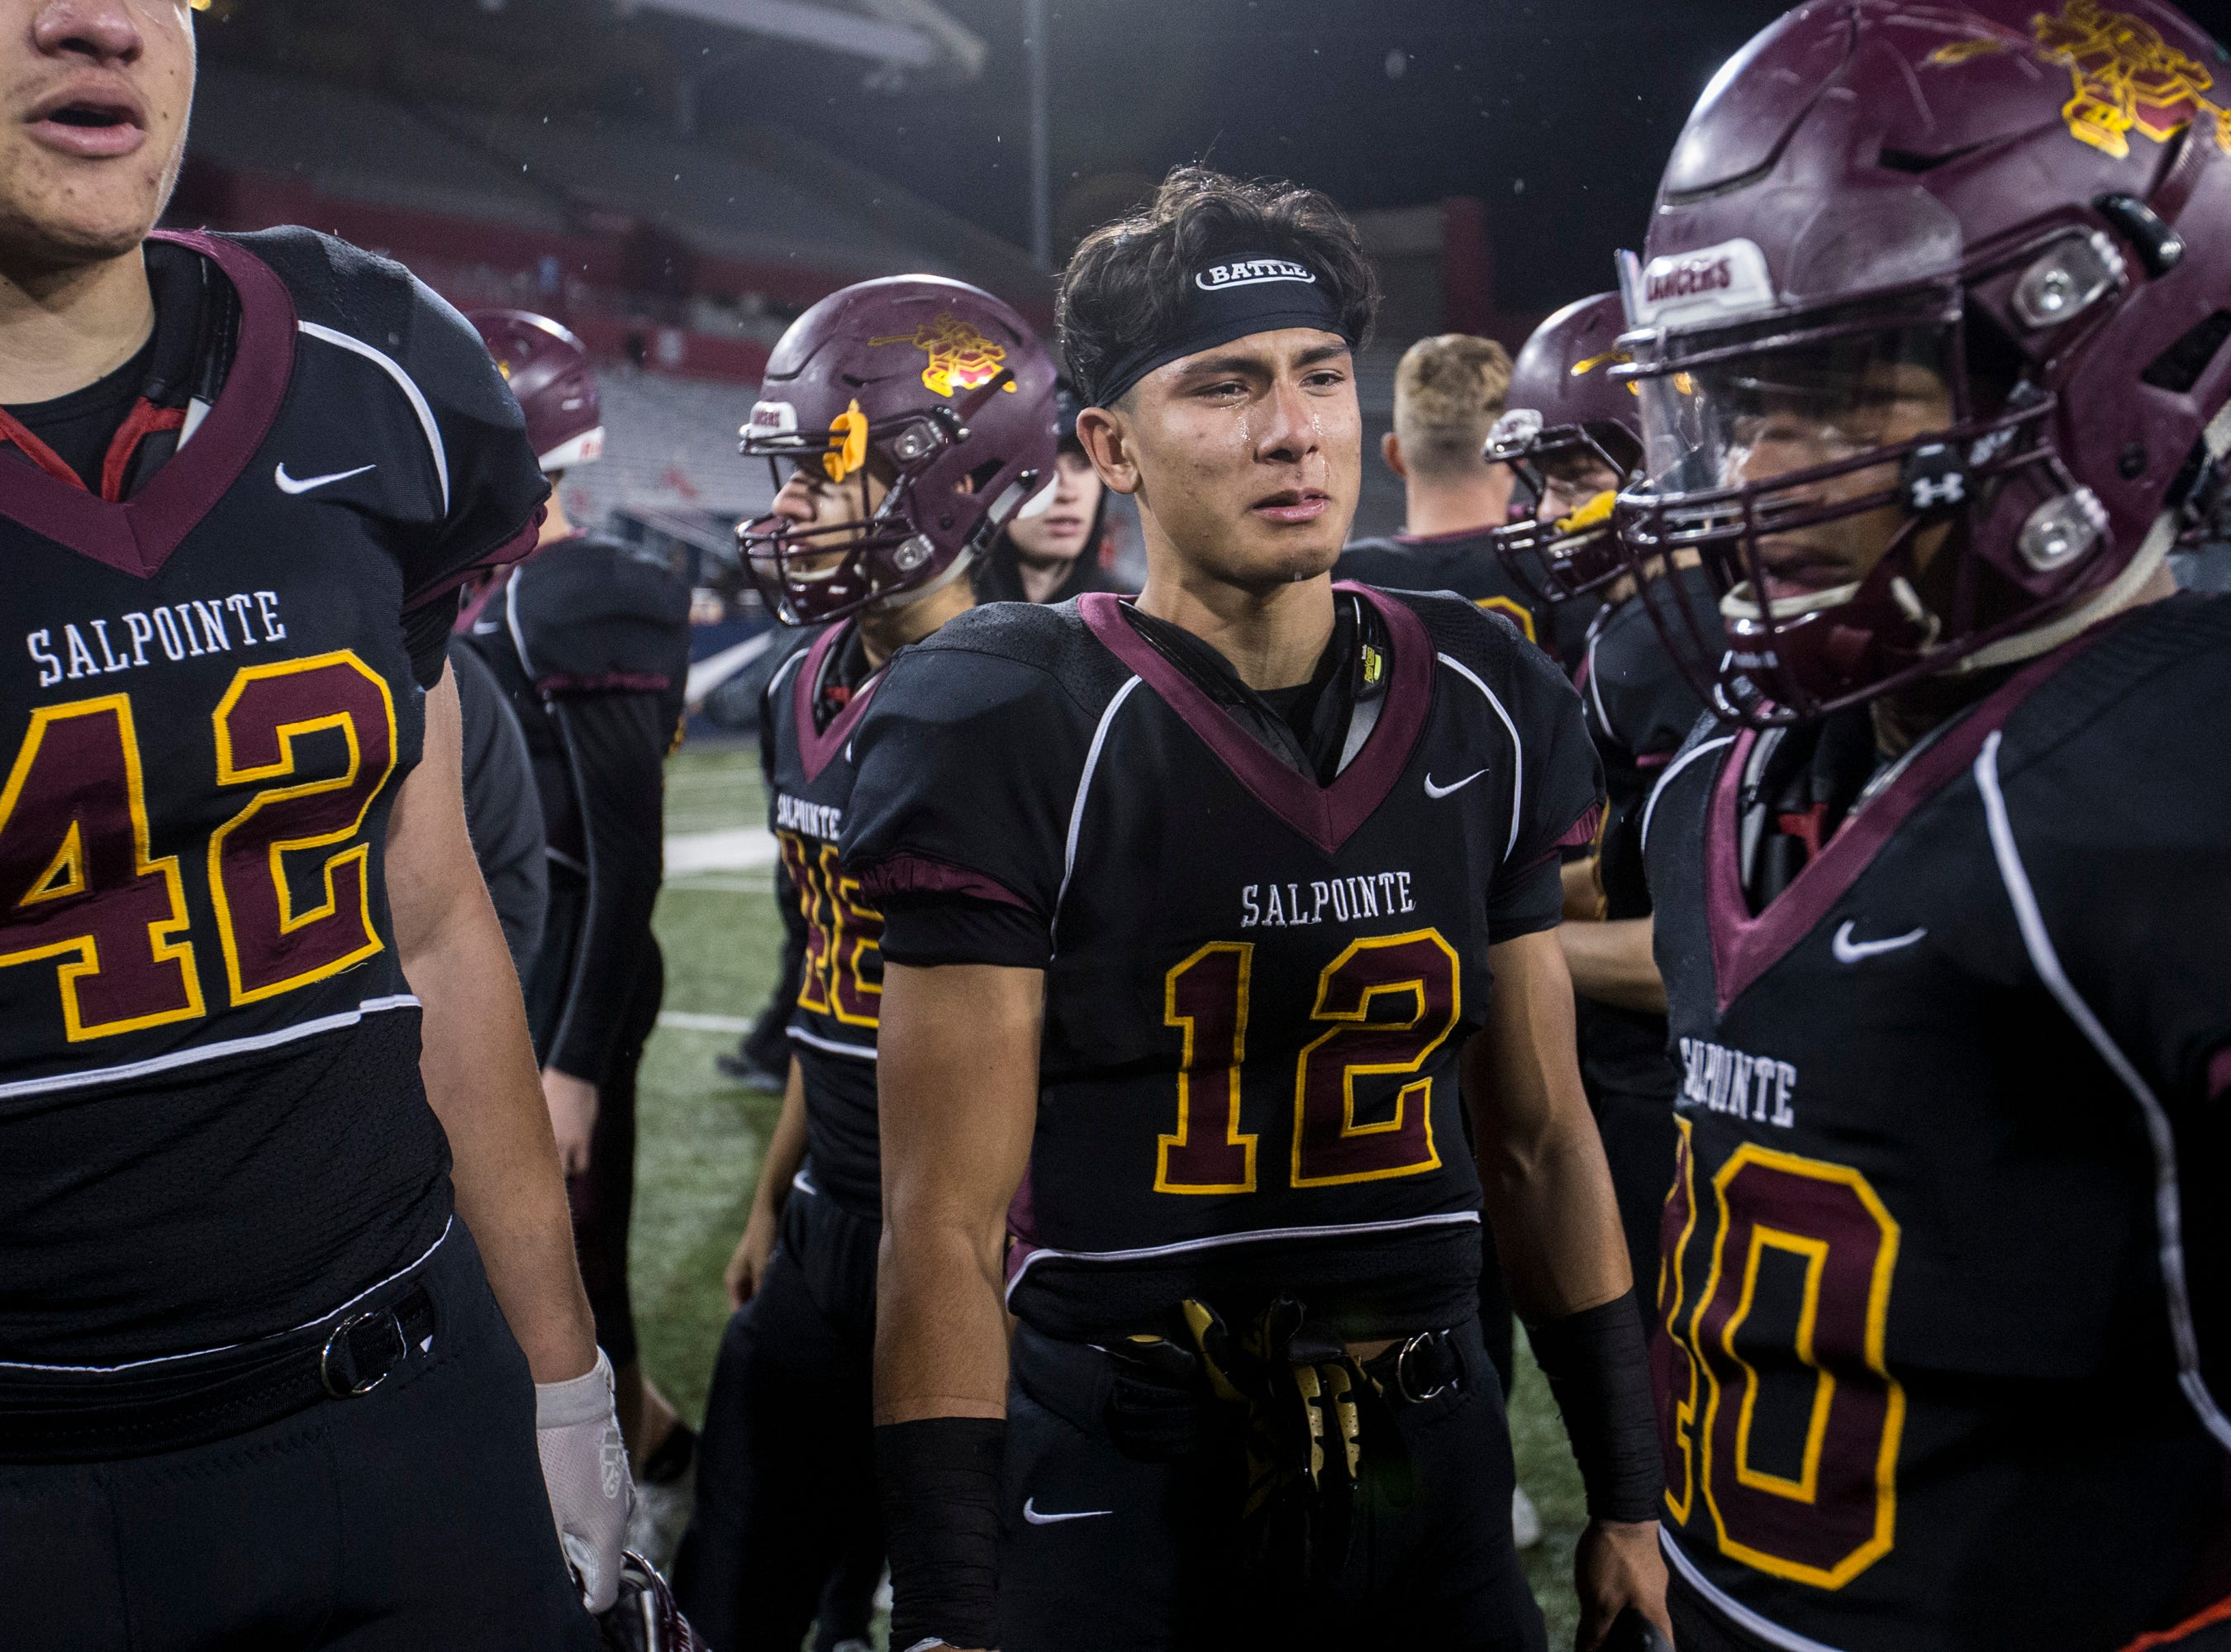 Salpointe players cry after losing to Saguaro for the 4A State Championship on Friday, Nov. 30, 2018, at Arizona Stadium in Tucson, Ariz. Saguaro won, 42-16.